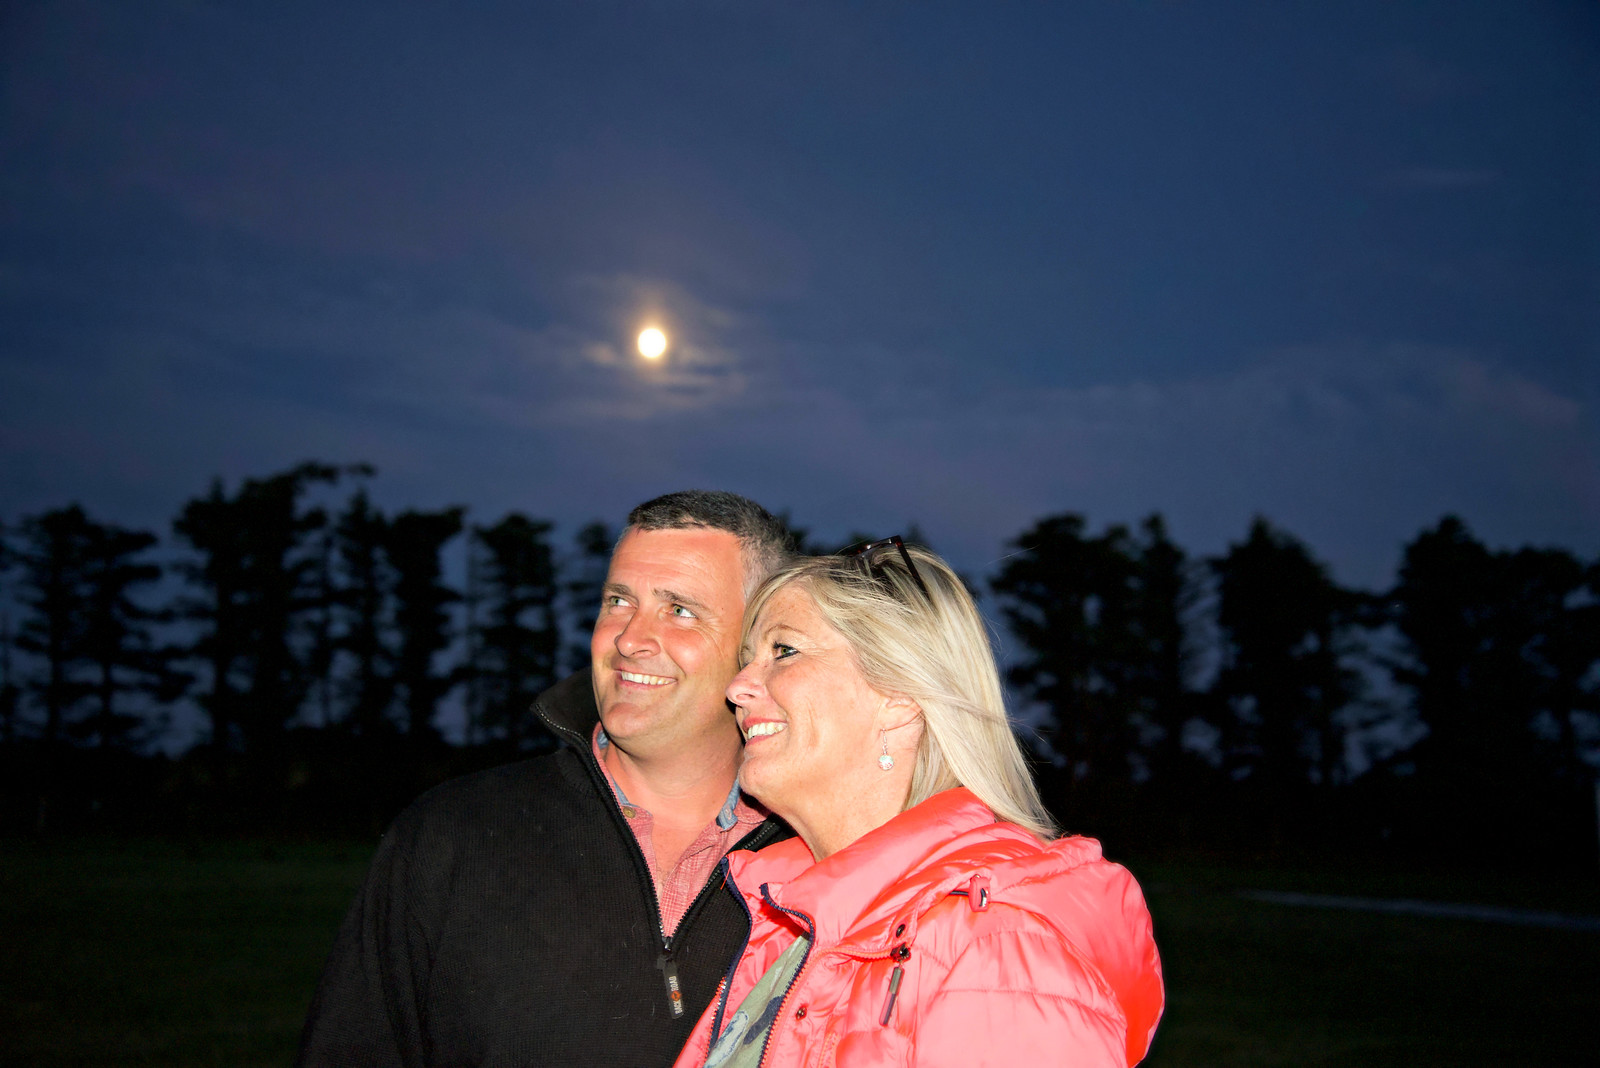 Alun and Nia Williams, owners of 'Glampio Coed Glamping'.